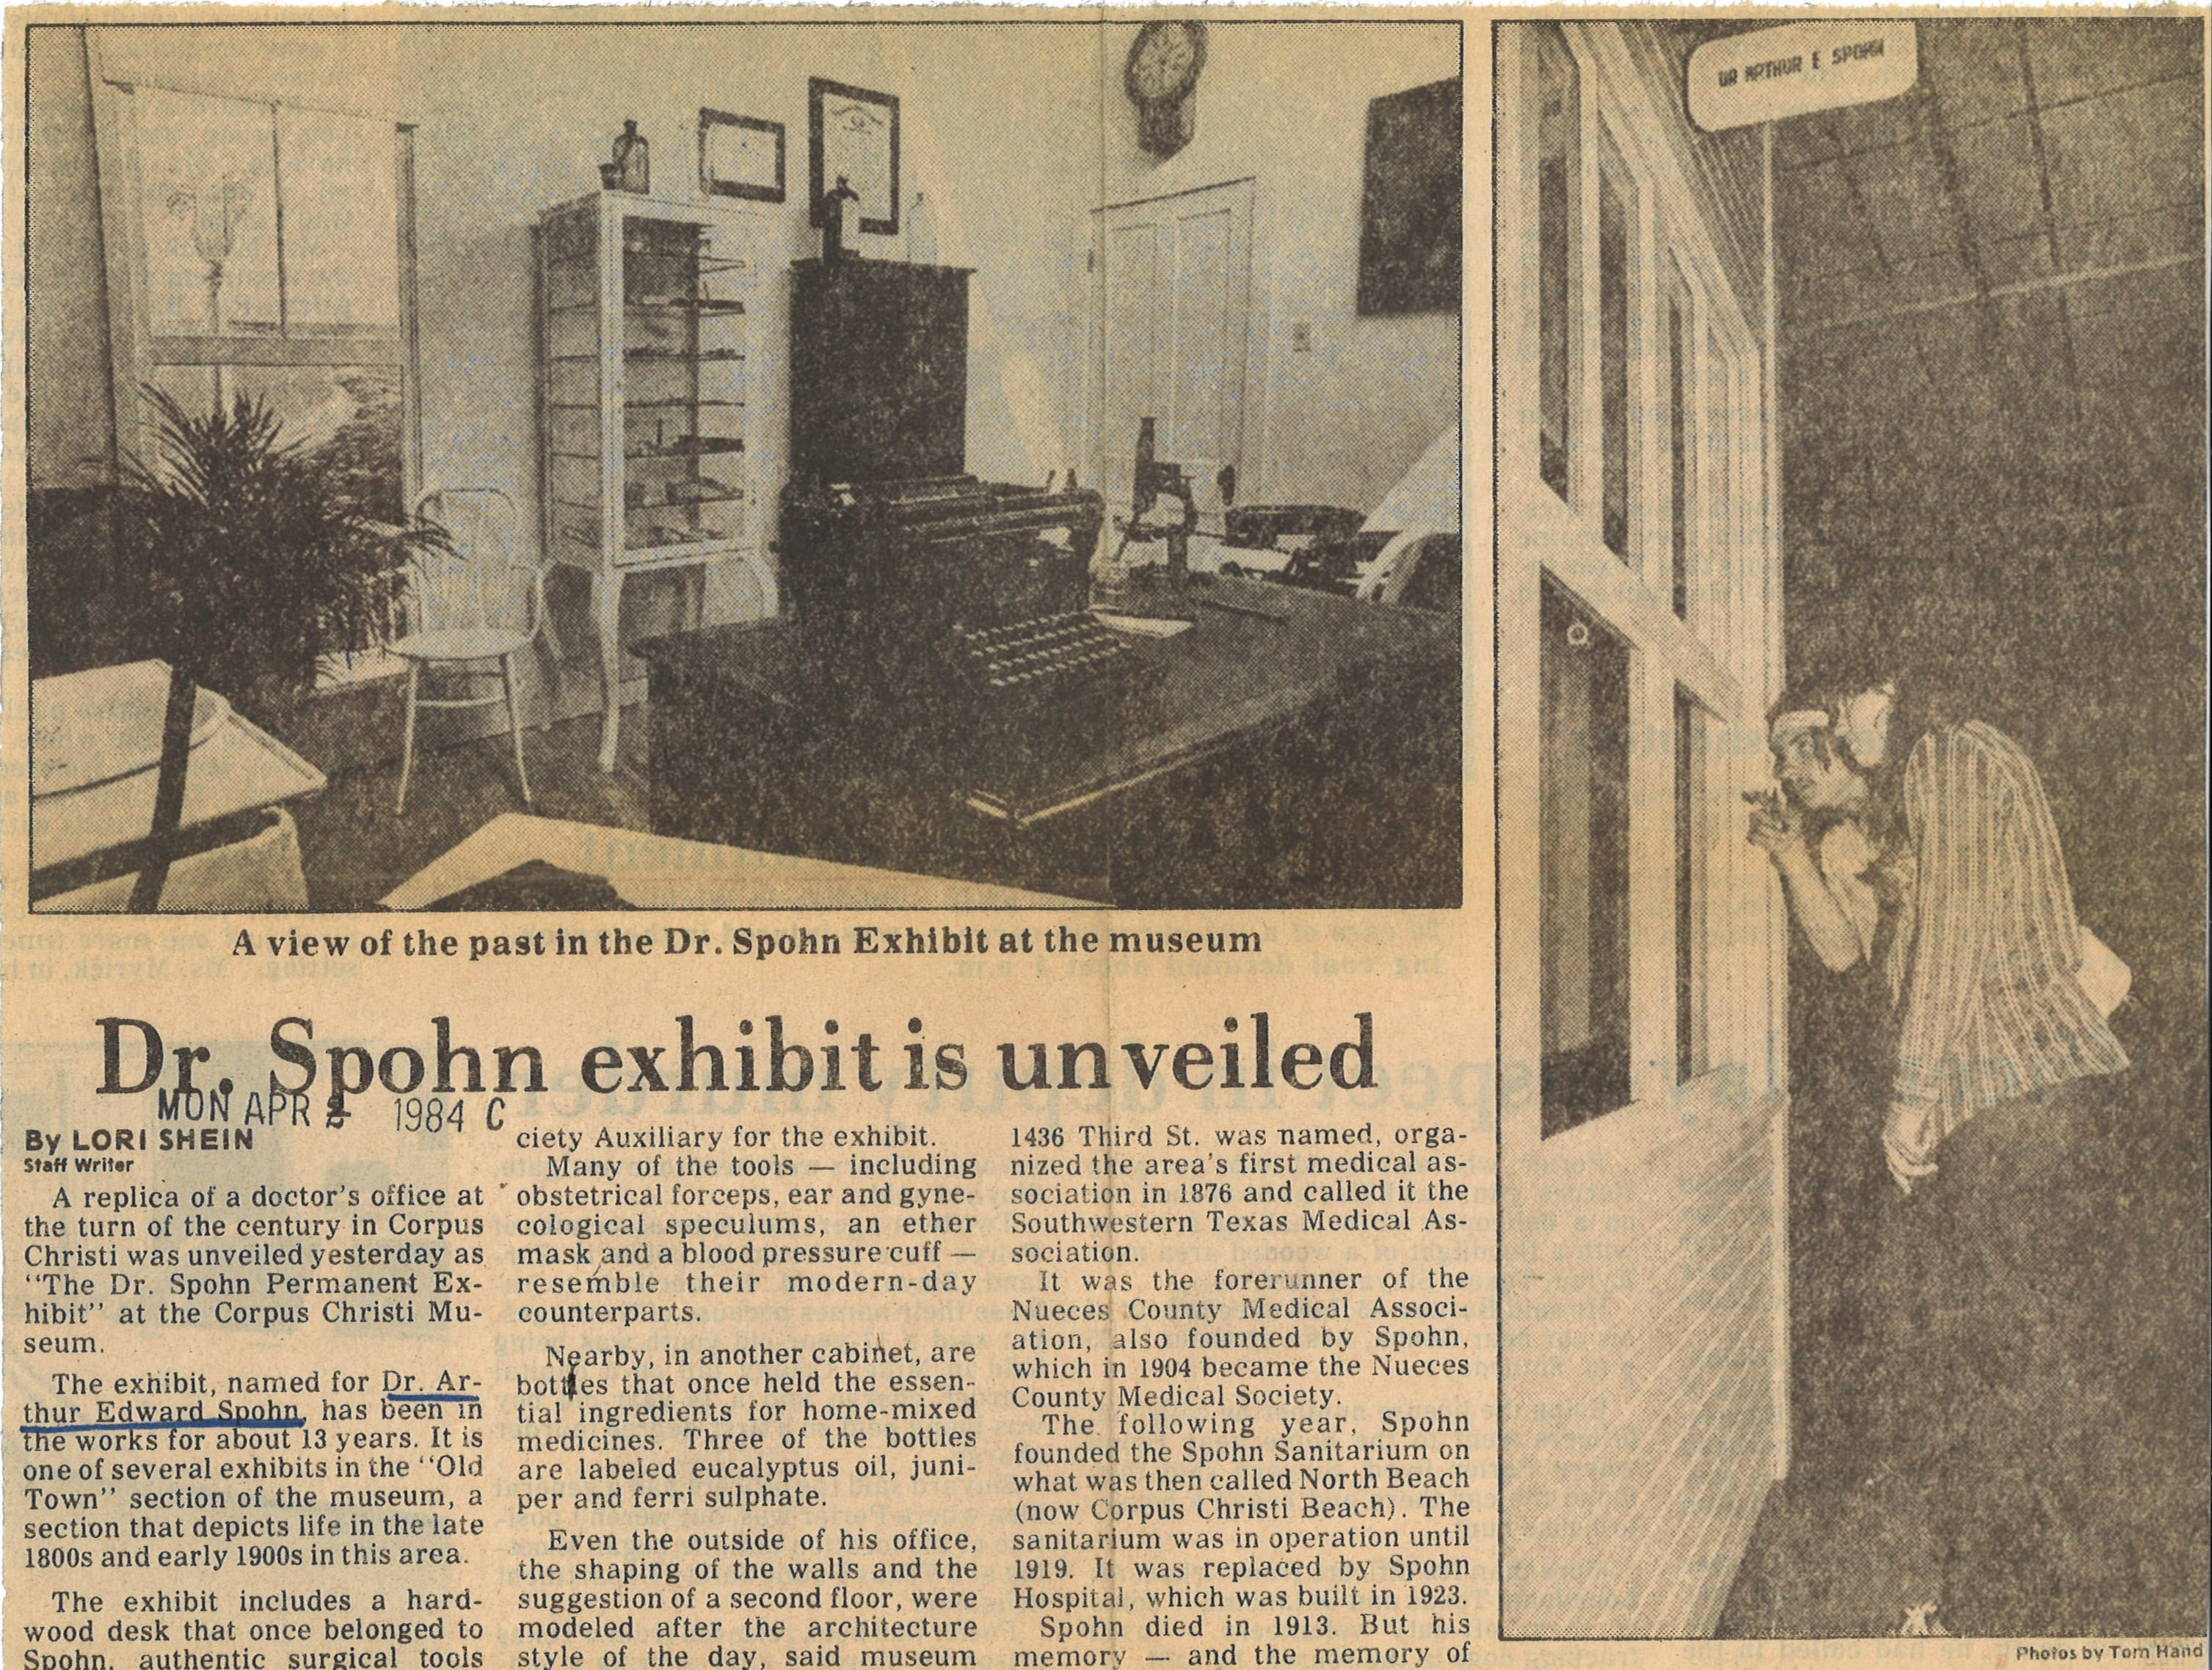 The Corpus Christi Museum of Science and History unveiled its exhibit on Dr. Arthur Spohn in April 1984.